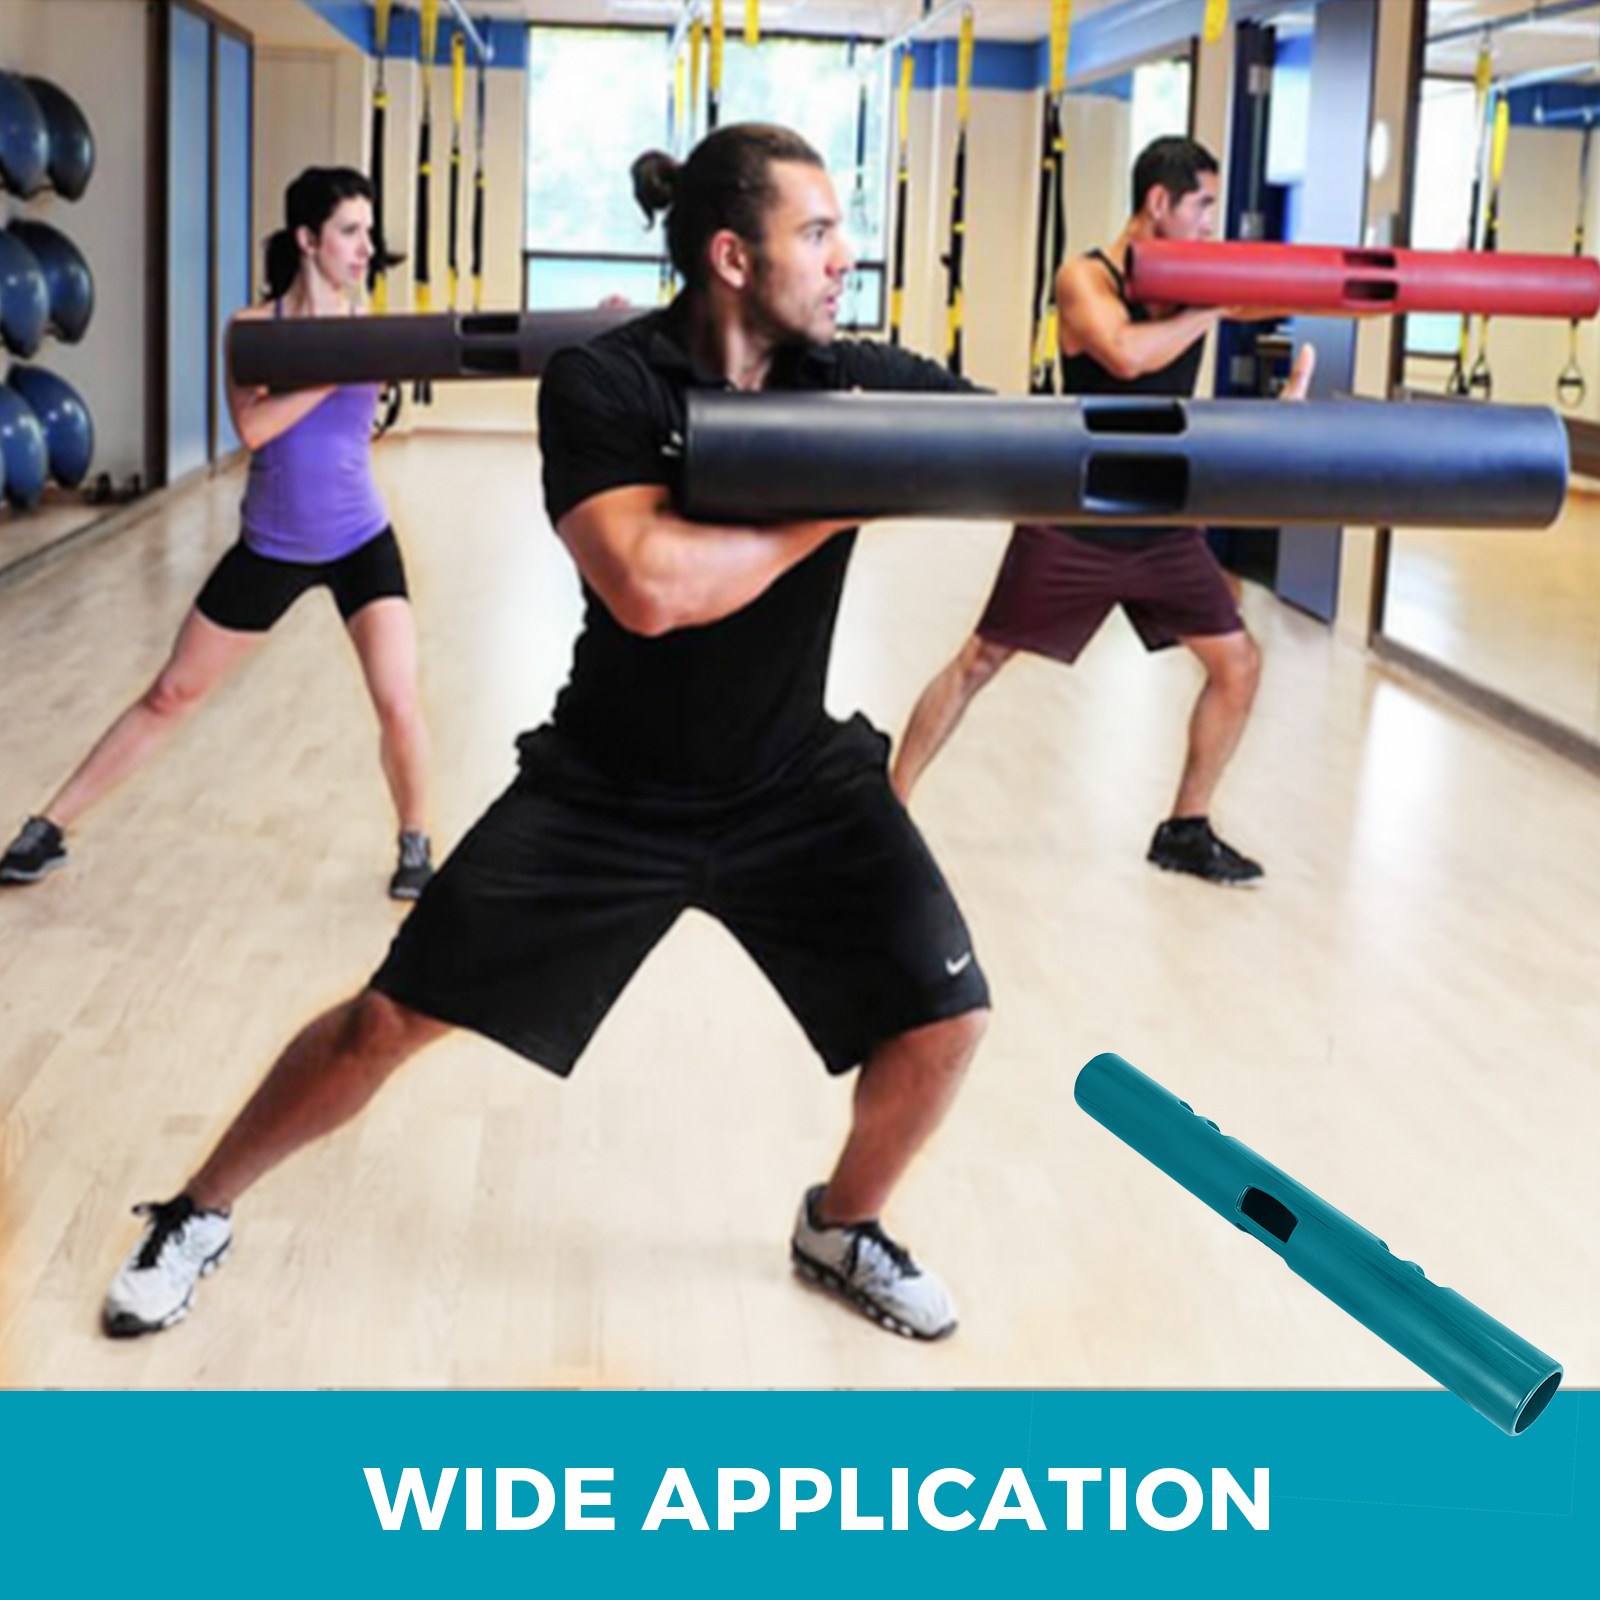 Vipr-Fitpro-Fitness-Tube-Loaded-Movement-Training-weightlifting-4-6-8-10-12-Kg thumbnail 175